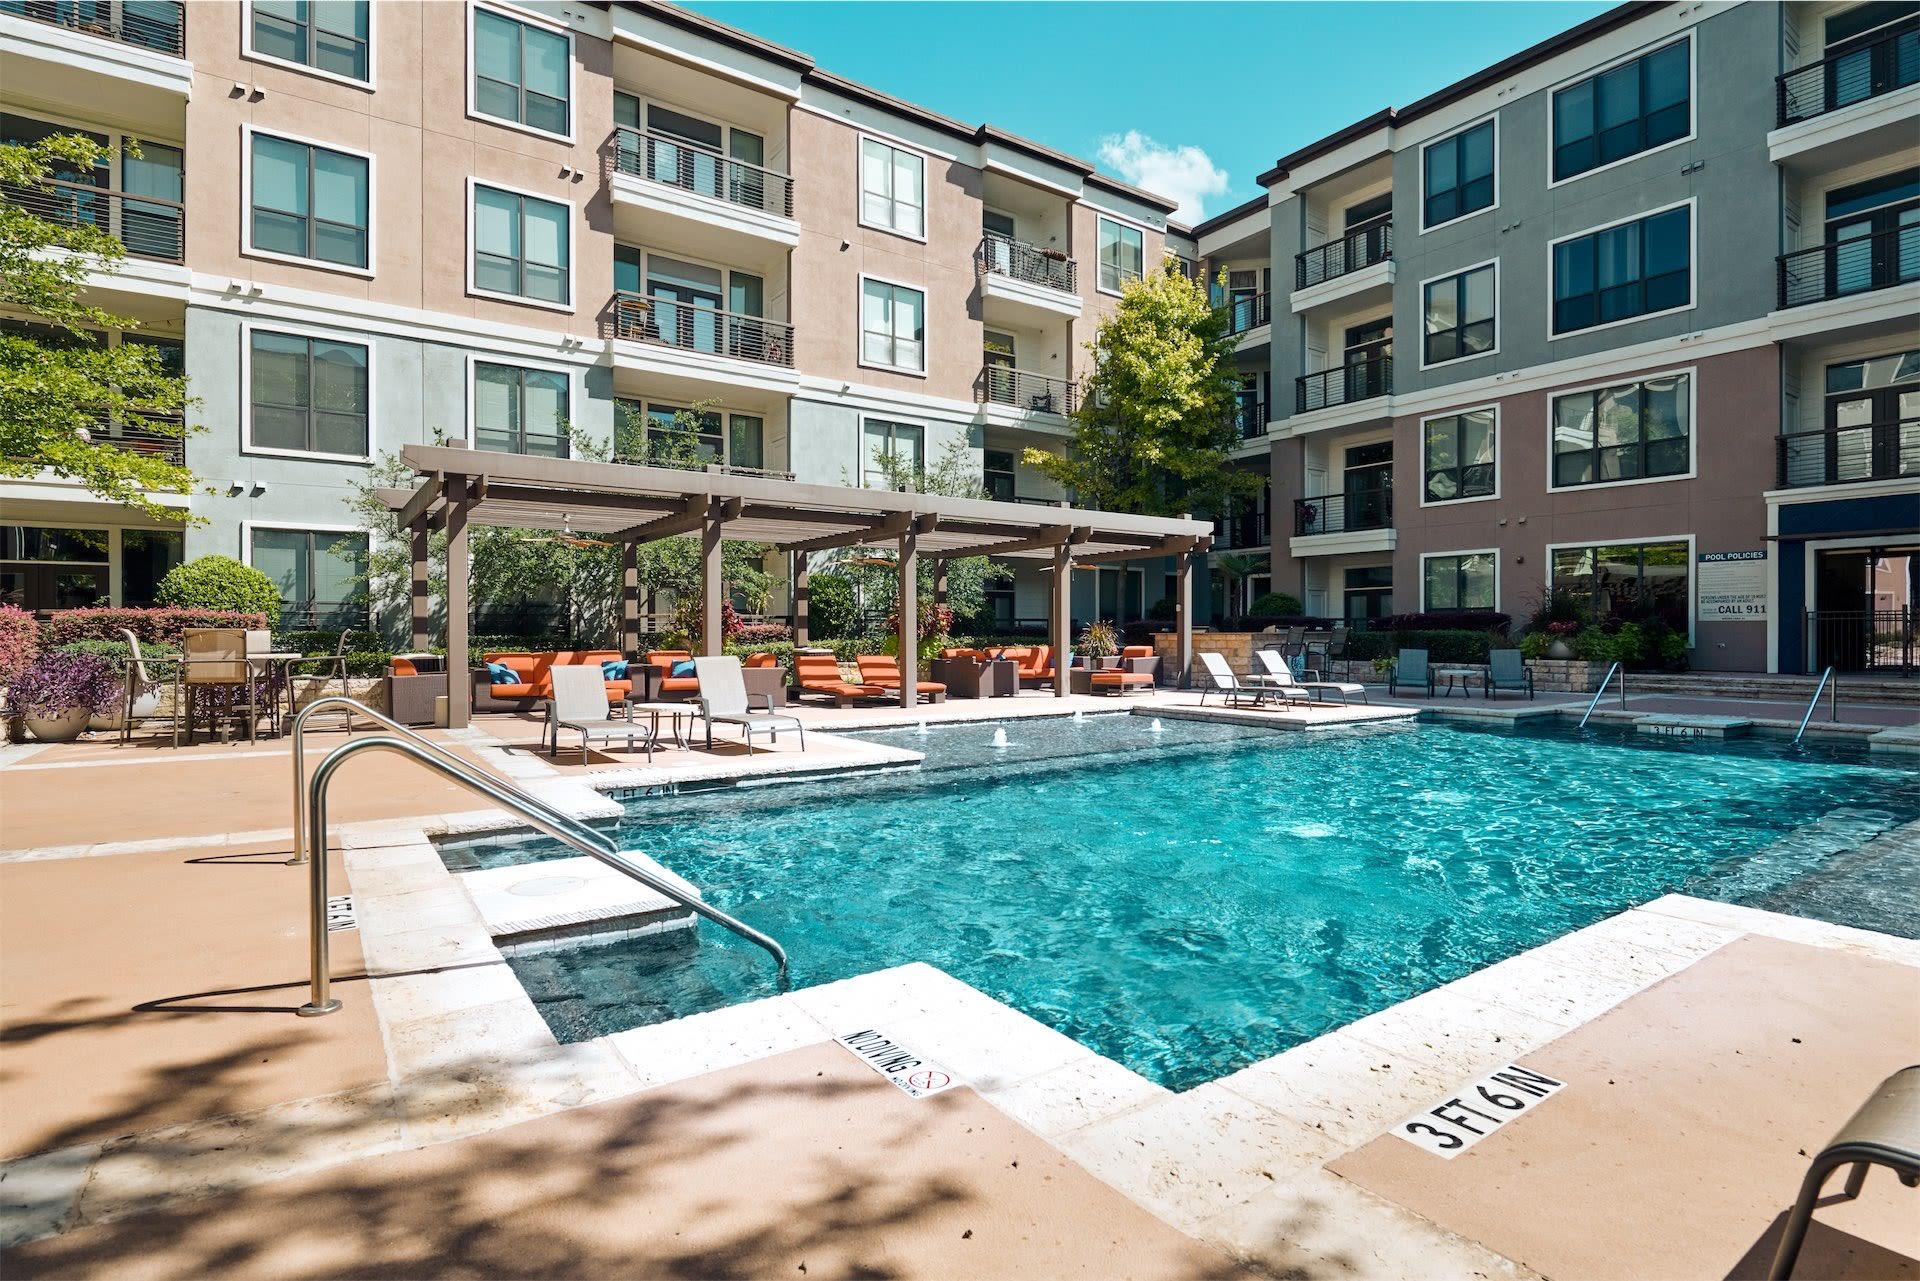 Pool at Seville Uptown in Dallas, Texas